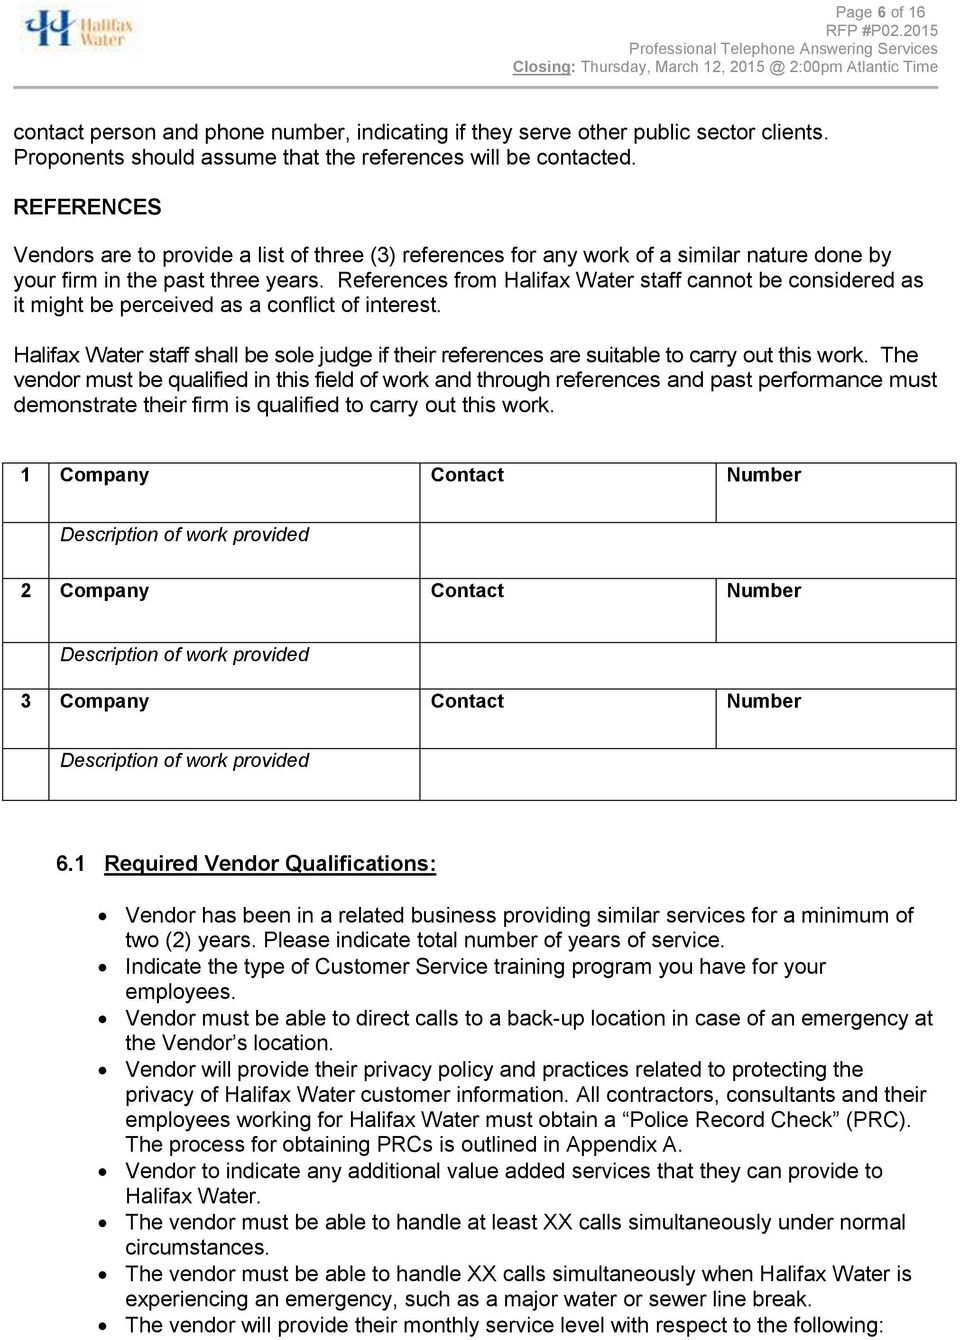 REQUEST FOR PROPOSAL P PROFESSIONAL TELEPHONE ANSWERING